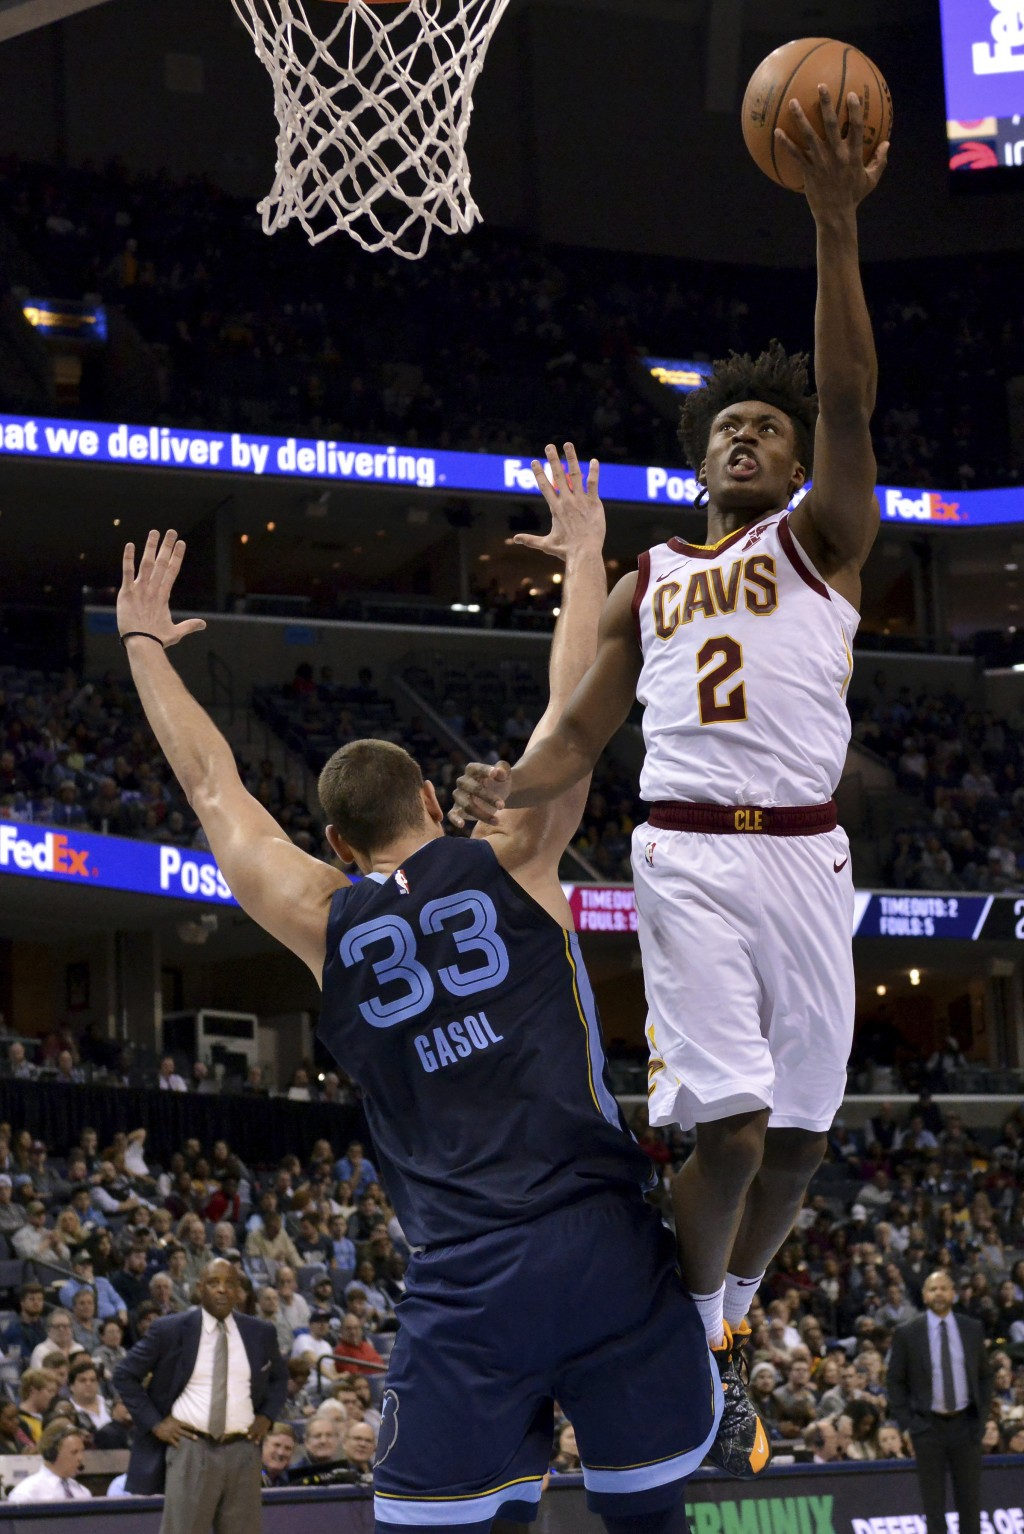 Cleveland Cavaliers guard Collin Sexton (2) shoots over Memphis Grizzlies center Marc Gasol (33) during the second half of an NBA basketball game Wedn...